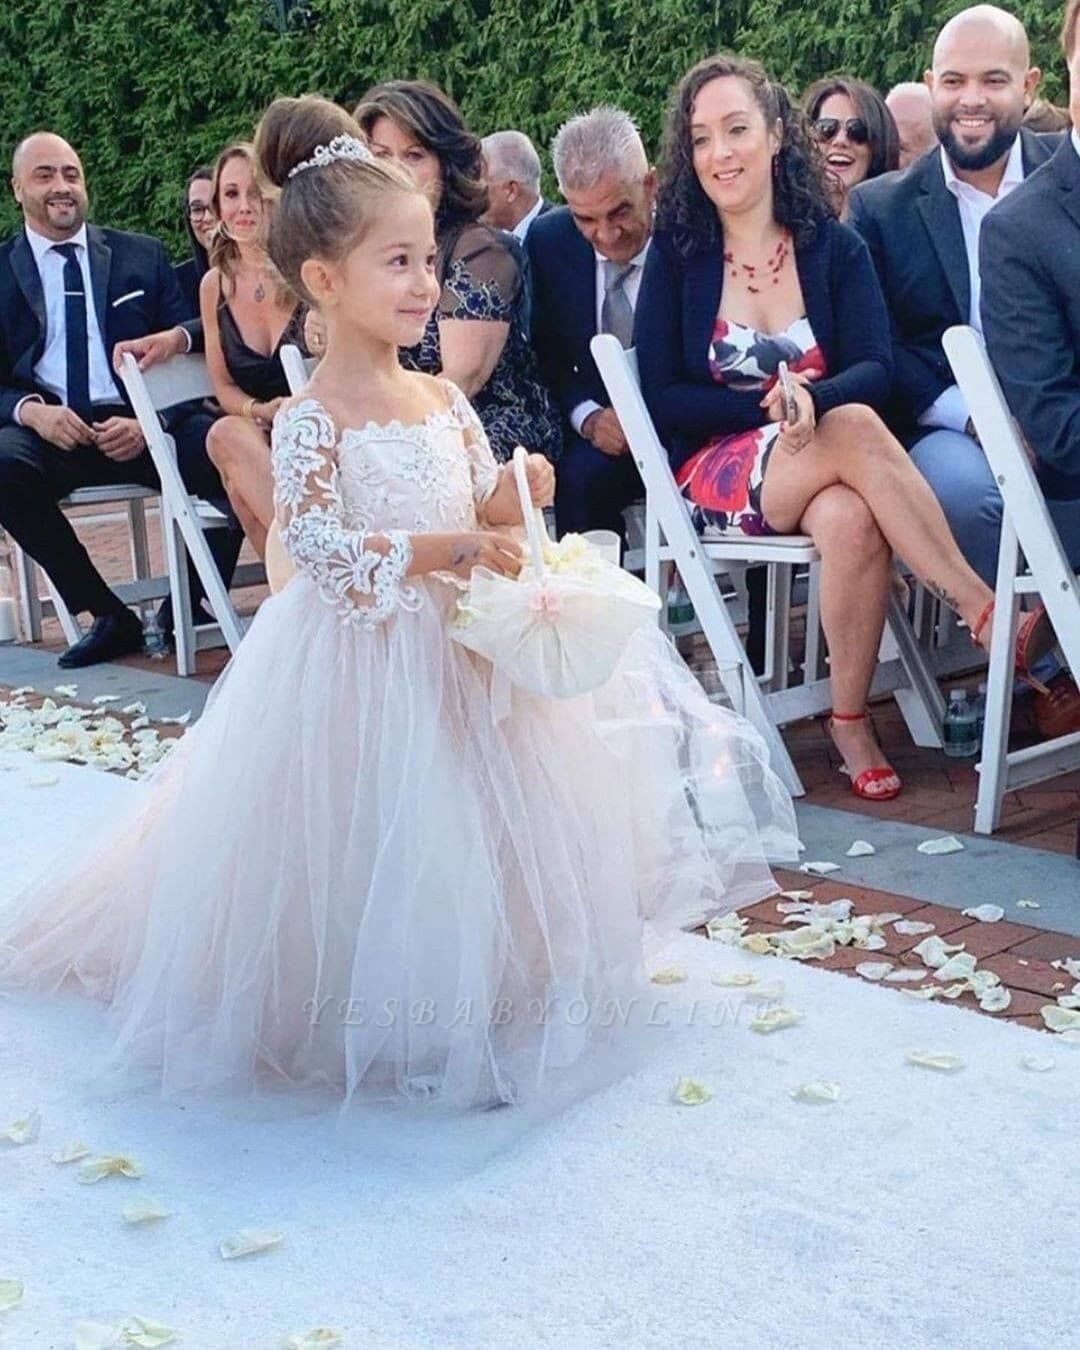 https://www.yesbabyonline.com/g/princess-jewel-long-sleeves-sweep-train-lace-tulle-flower-girl-dresses-with-bowknot-115404.html?utm_source=blog&utm_medium=lady-k&utm_campaign=post&source=lady-k